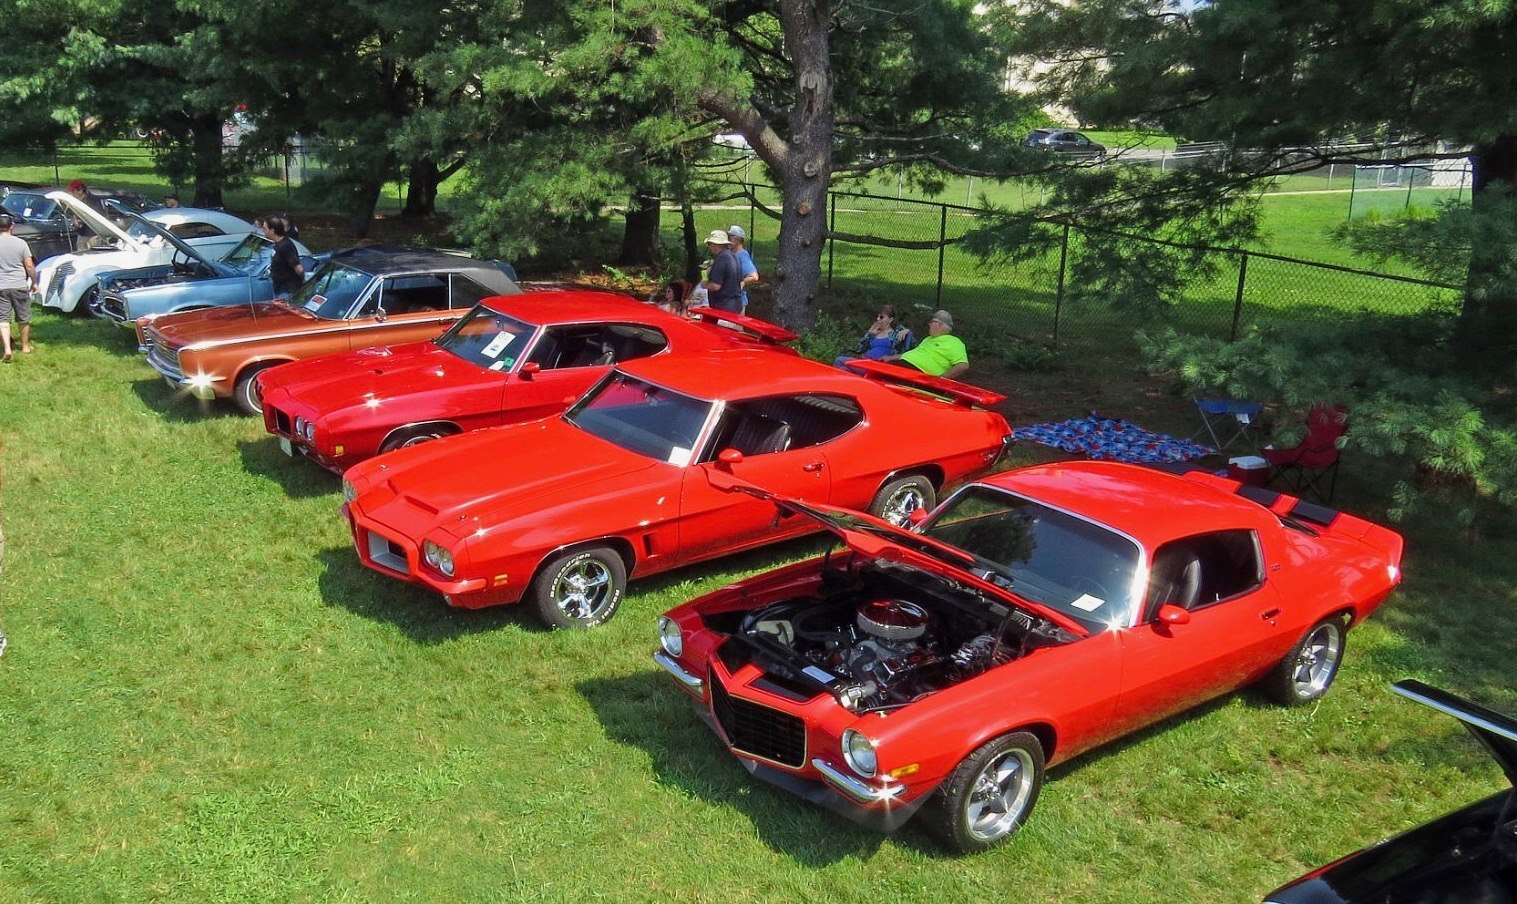 MA - North reading - Annual Classics & Collectables Motor